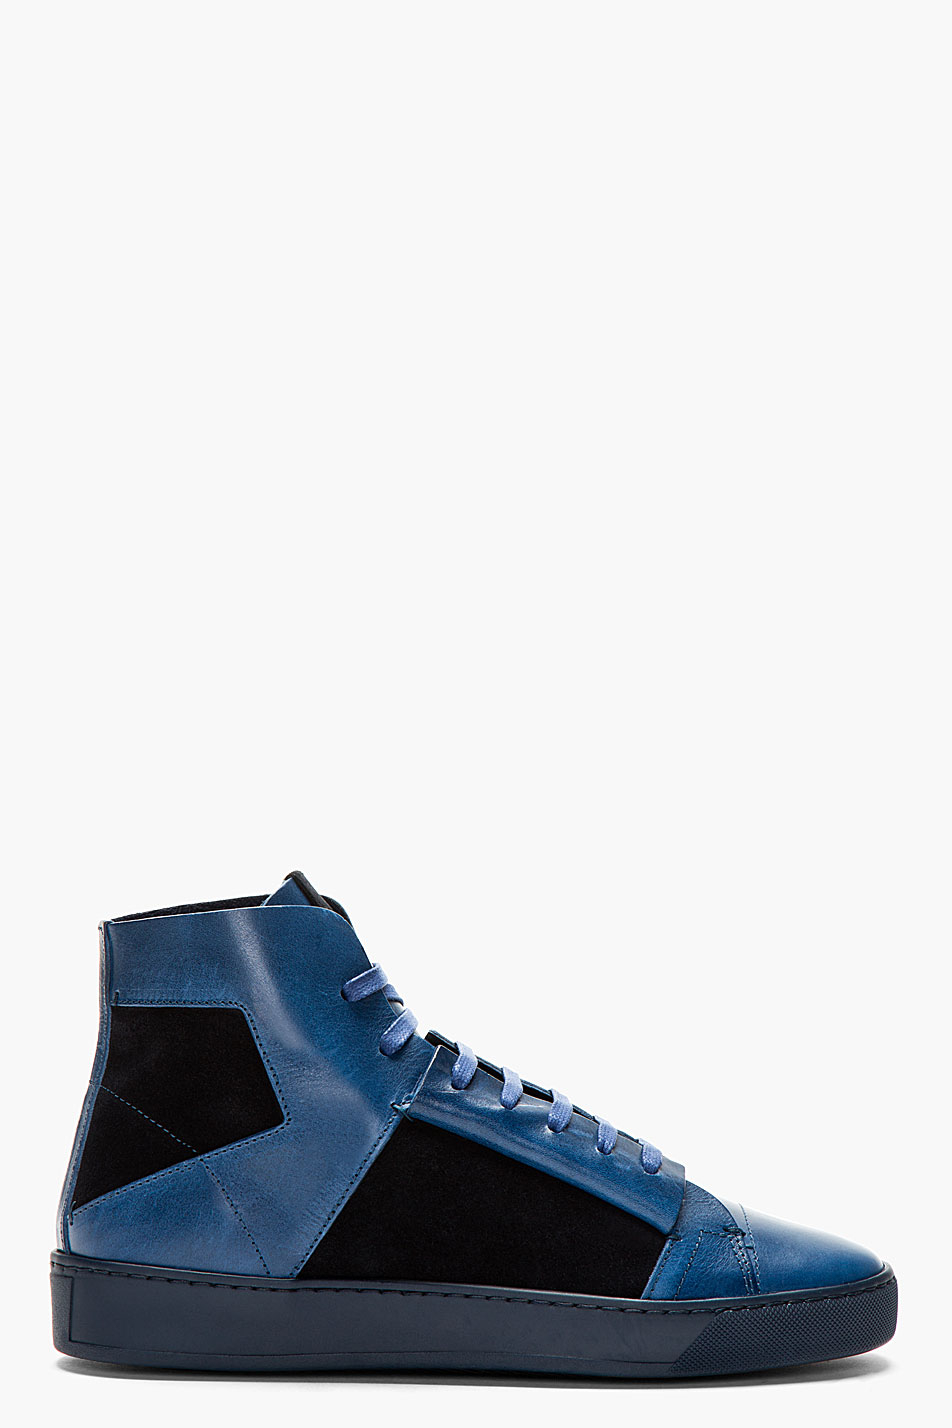 calvin klein navy leather high top jay sneakers in blue for men navy lyst. Black Bedroom Furniture Sets. Home Design Ideas